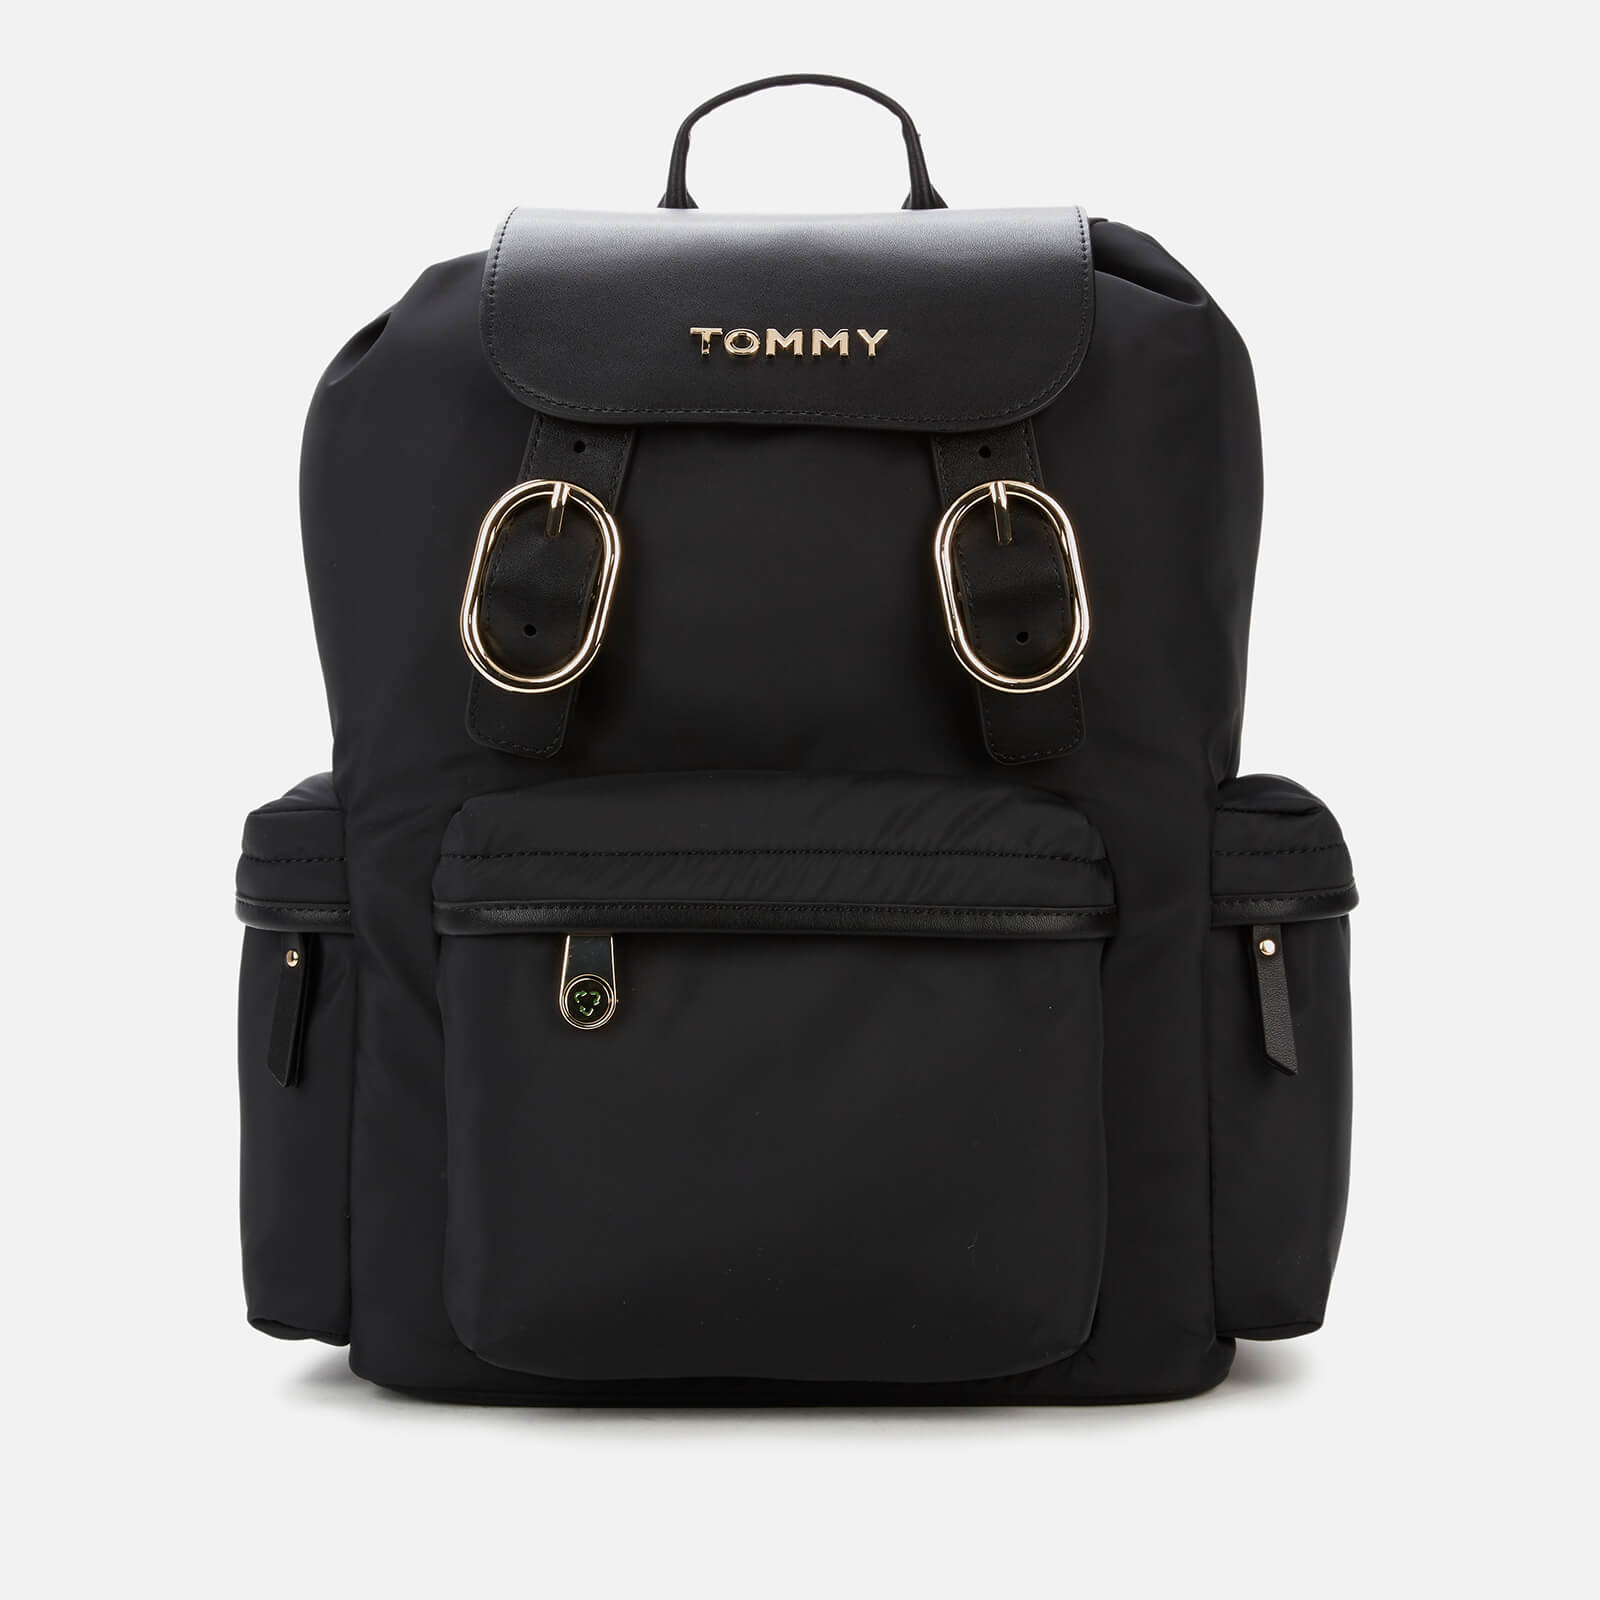 Tommy Hilfiger Women's Recycled Nylon Backpack - Black